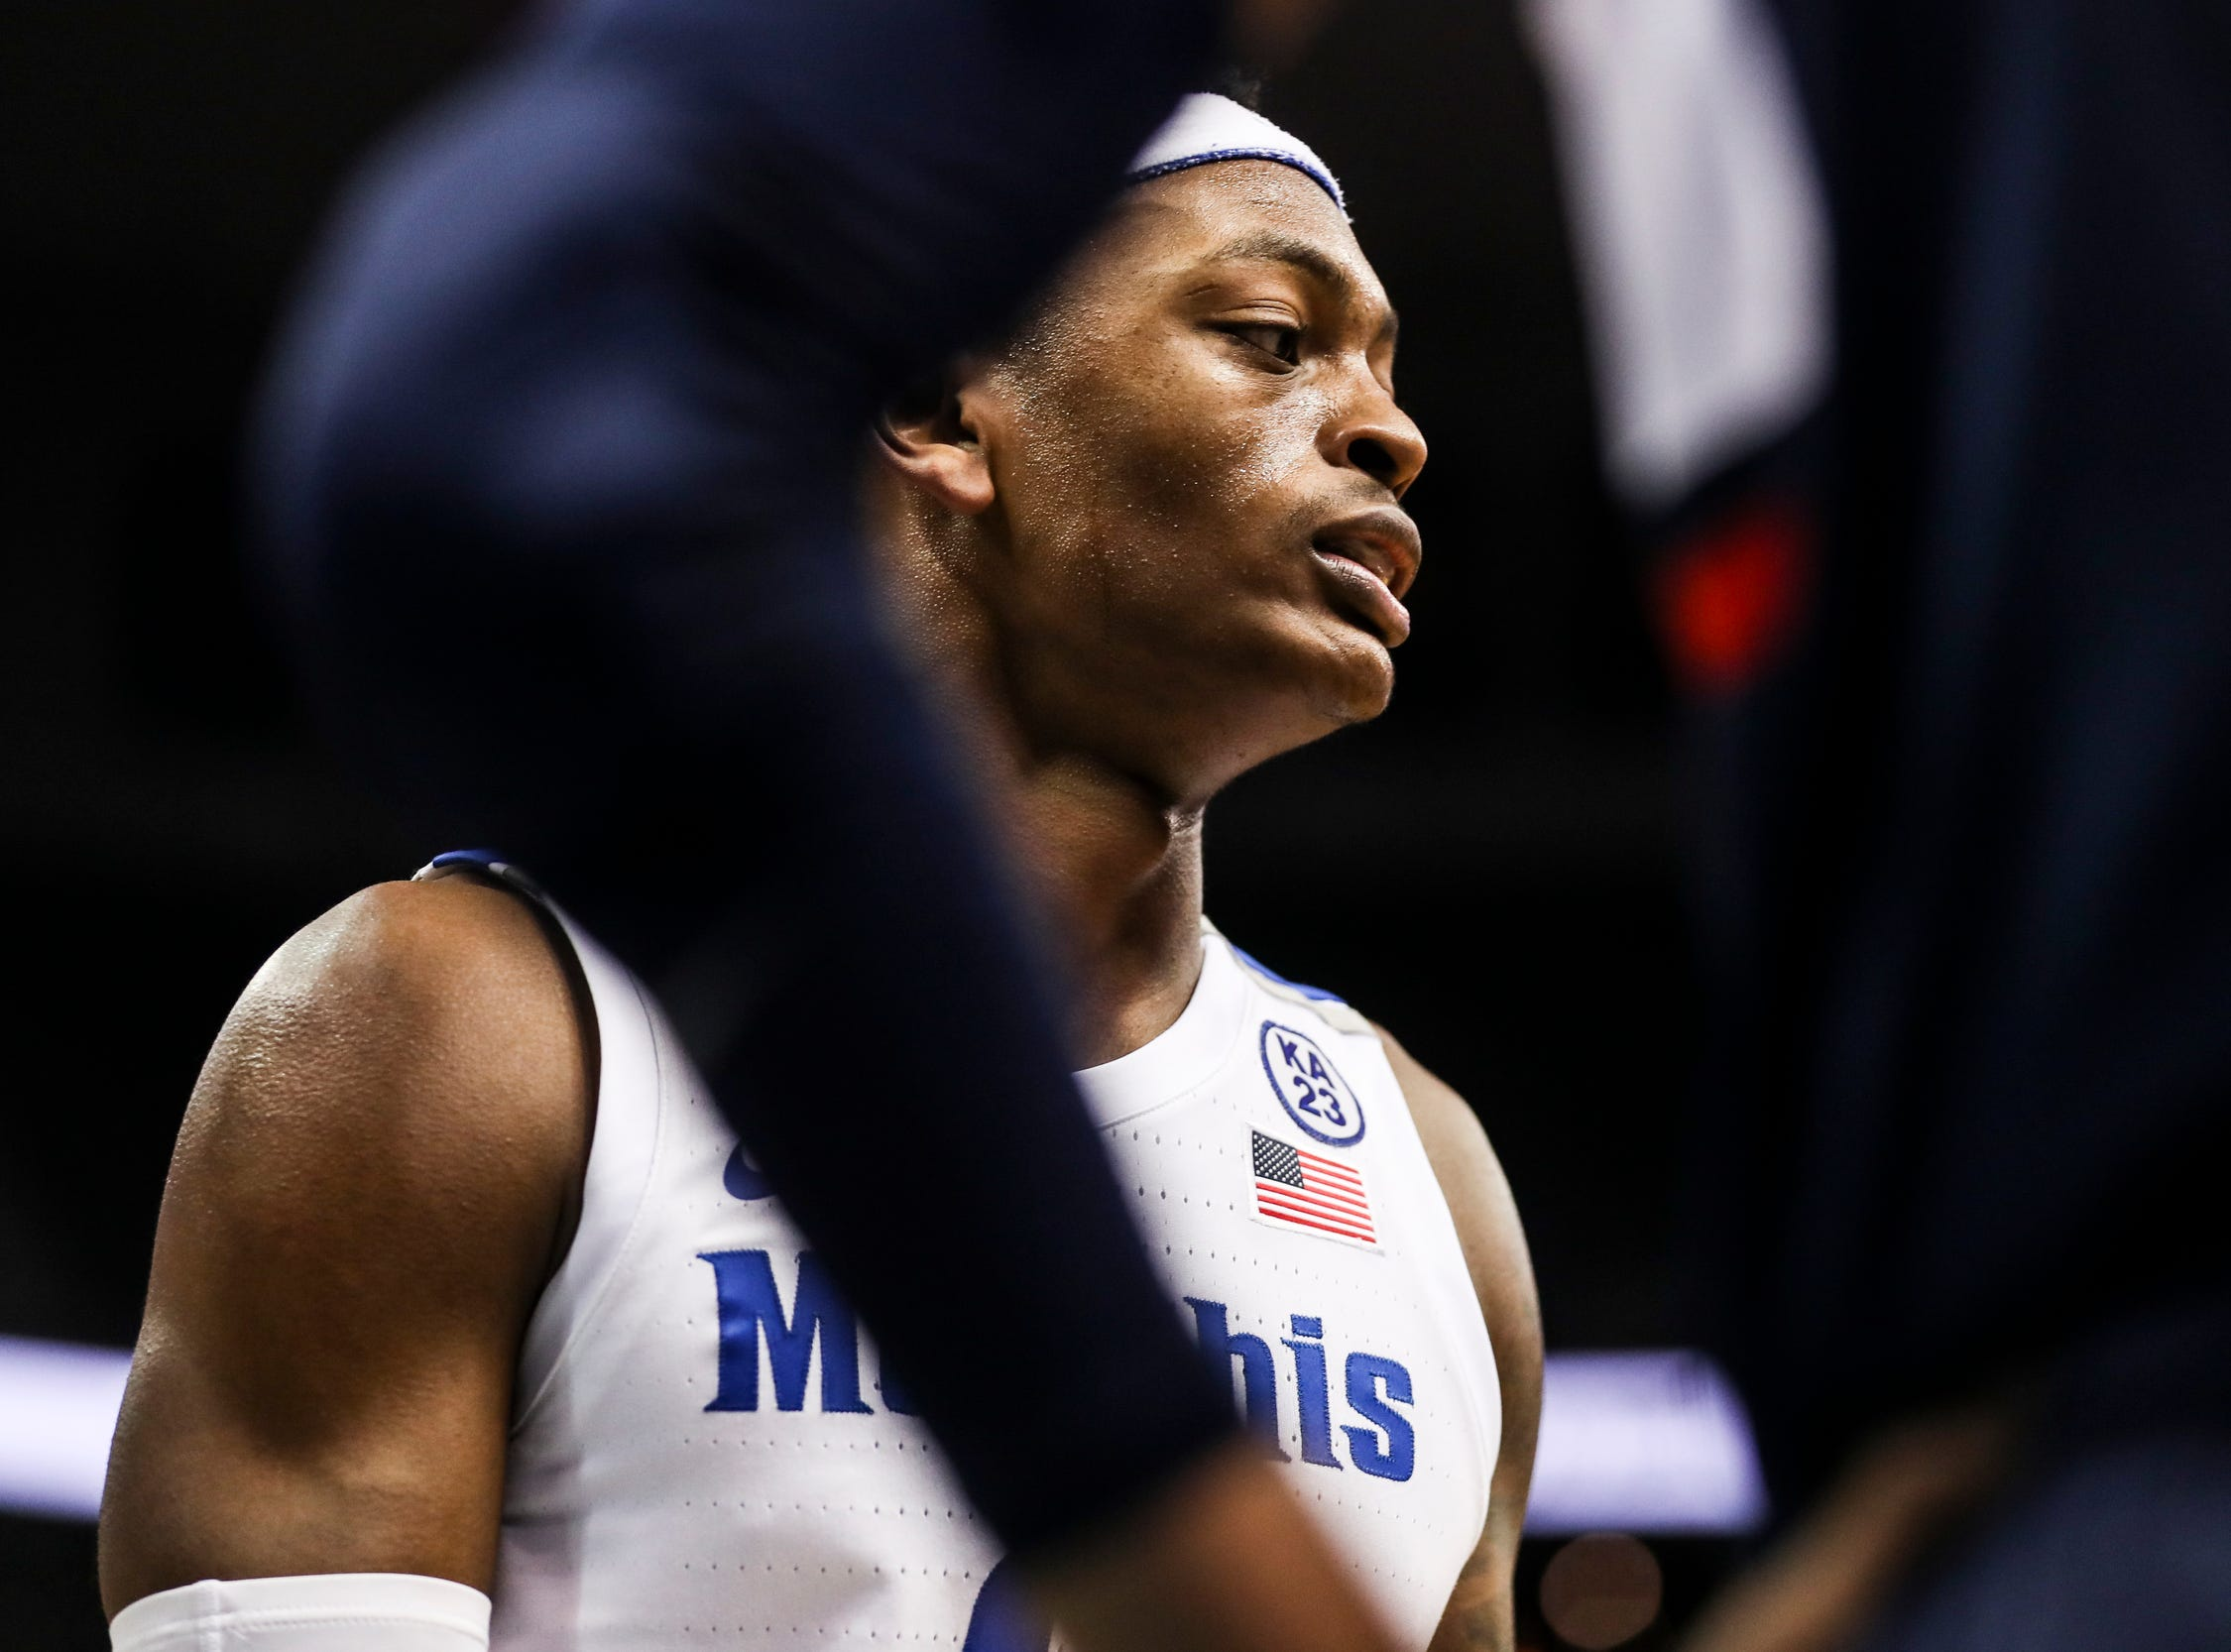 February 10, 2019 - Memphis' Kyvon Davenport is seen during Sunday's game versus Connecticut at the FedExForum.